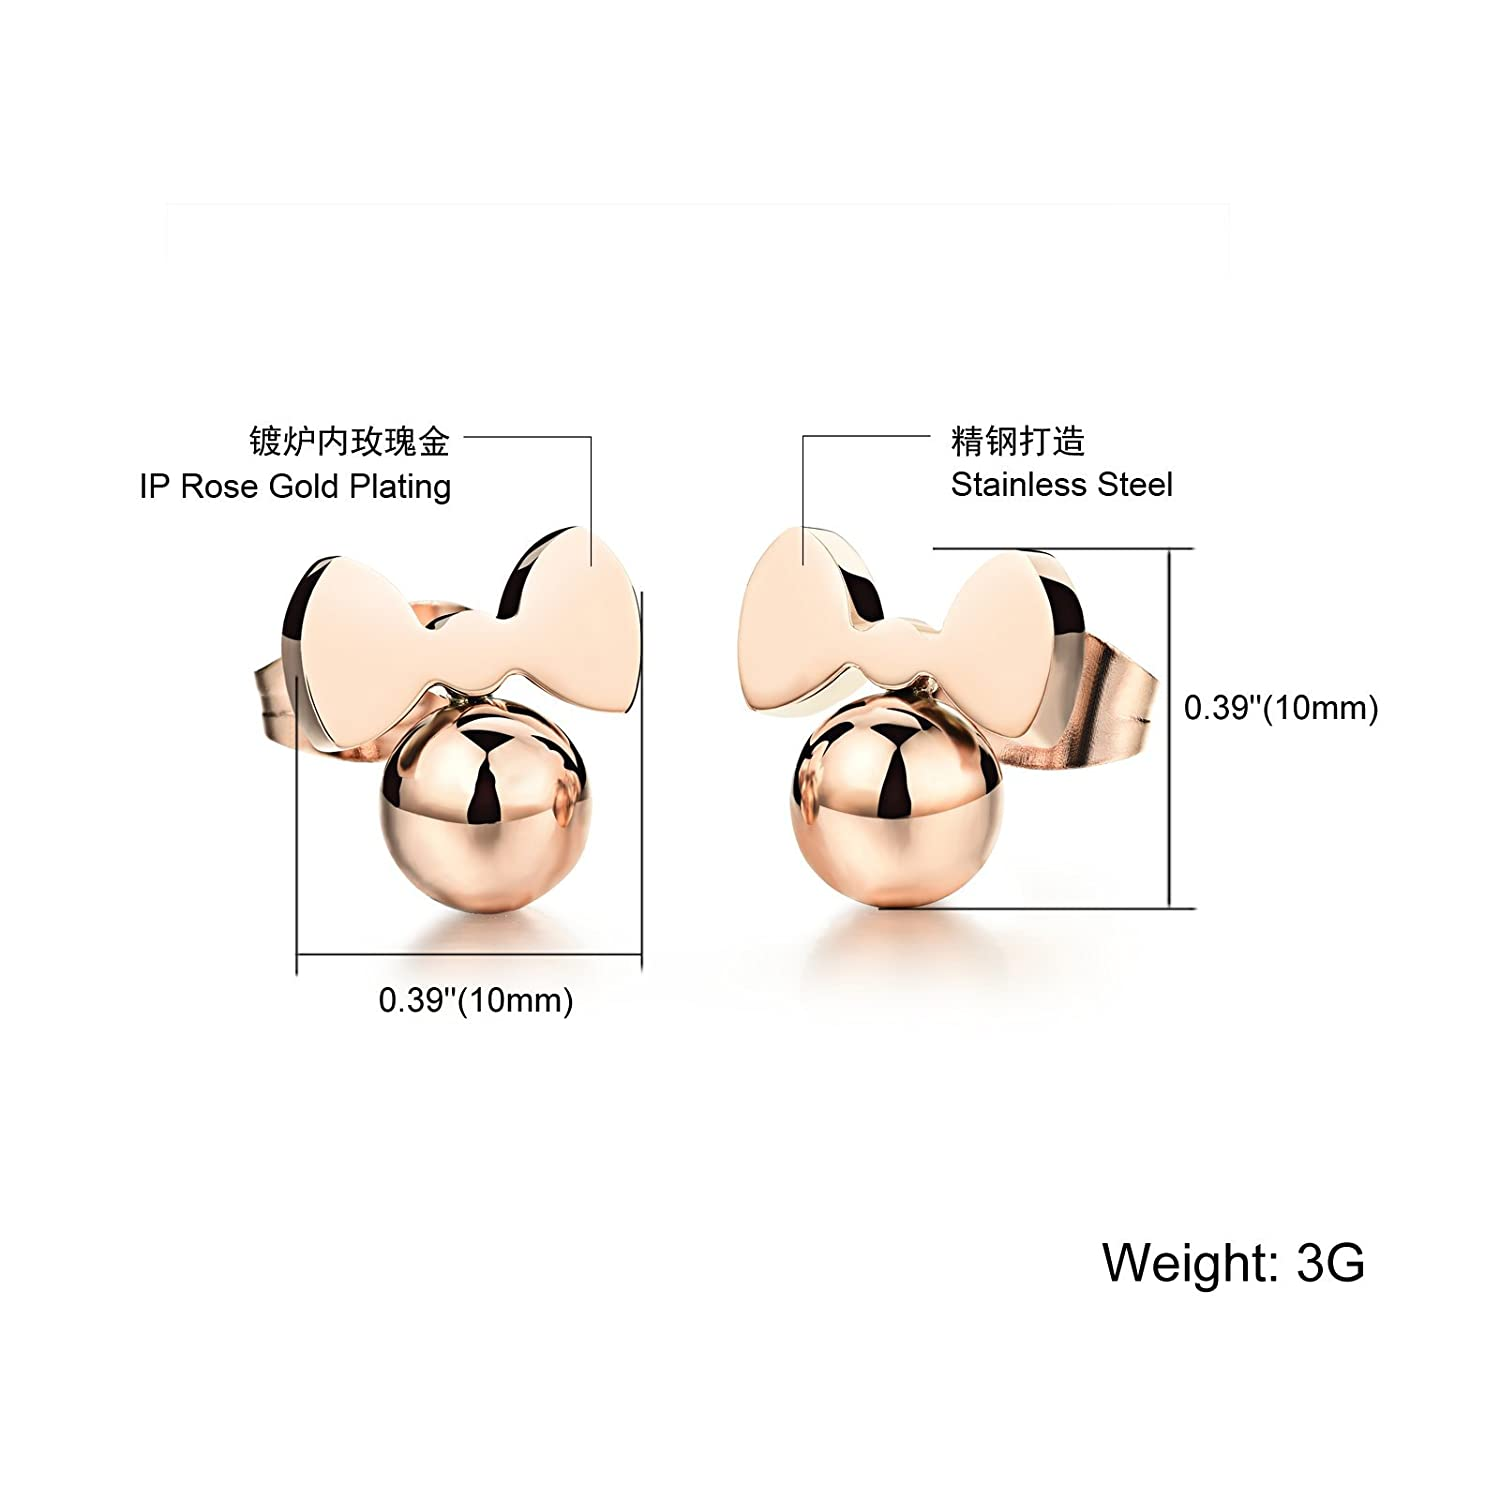 95f85d066 Amazon.com: Fate Love Jewelry Cute Rose Gold Plated Little Mouse Stud  Earrings for Girls Women, Hypoallergenic: Jewelry